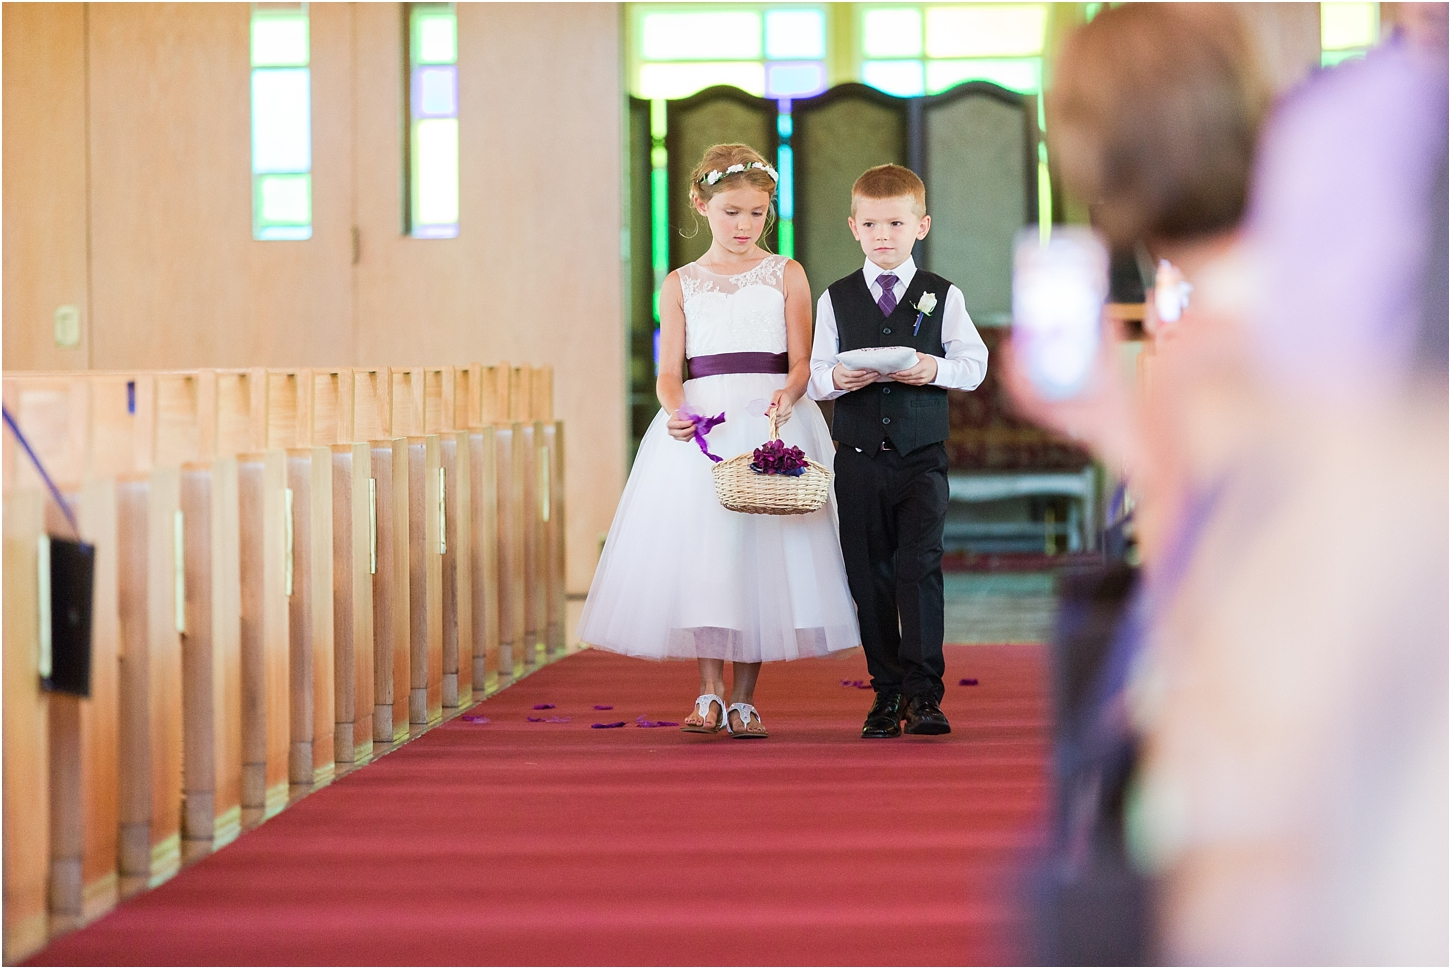 why-you-should-have-an-unplugged-wedding-by-courtney-carolyn-photography_0016.jpg